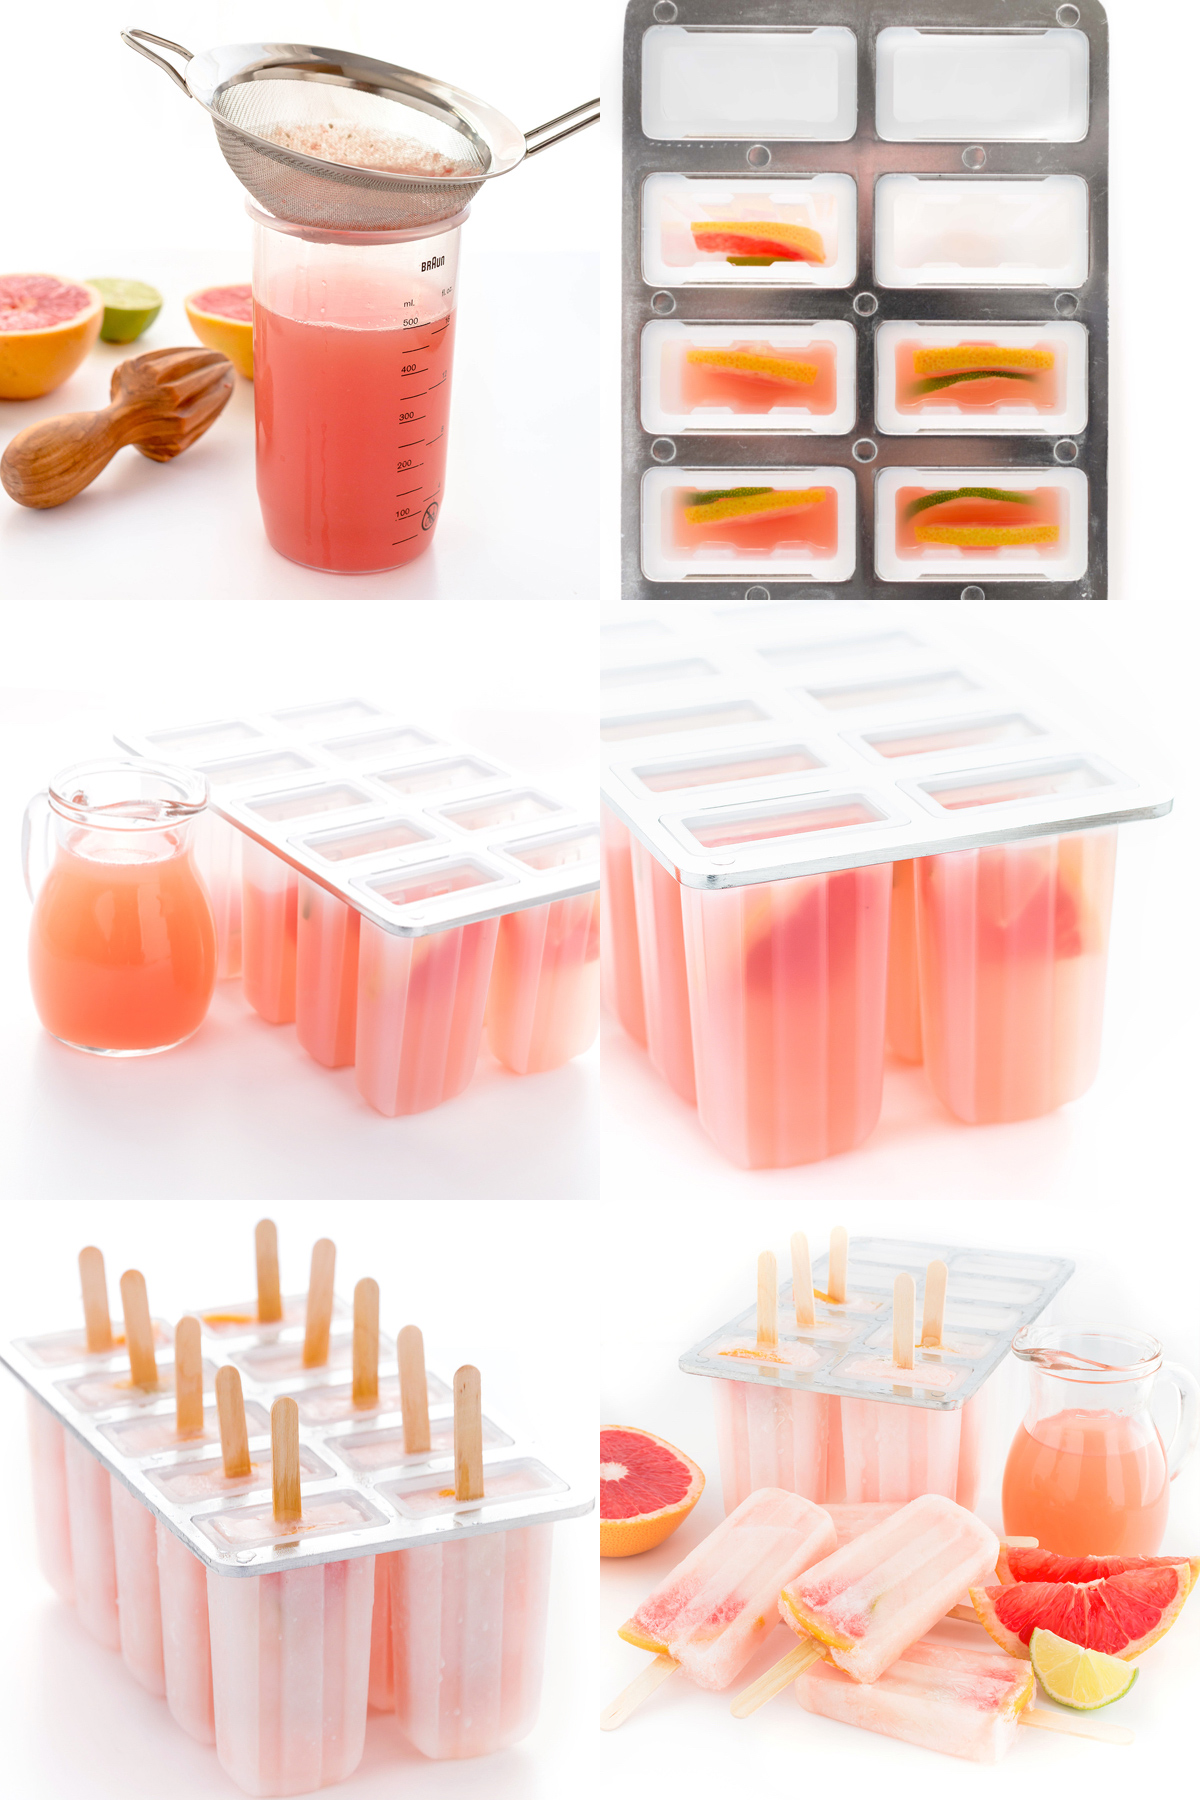 how to make healthy sugar-free 3 ingredients pink GRAPEFRUIT POPSICLES recipe - Ricetta GHIACCIOLI al POPMELMO ROSA 3 ingredienti senza zucchero